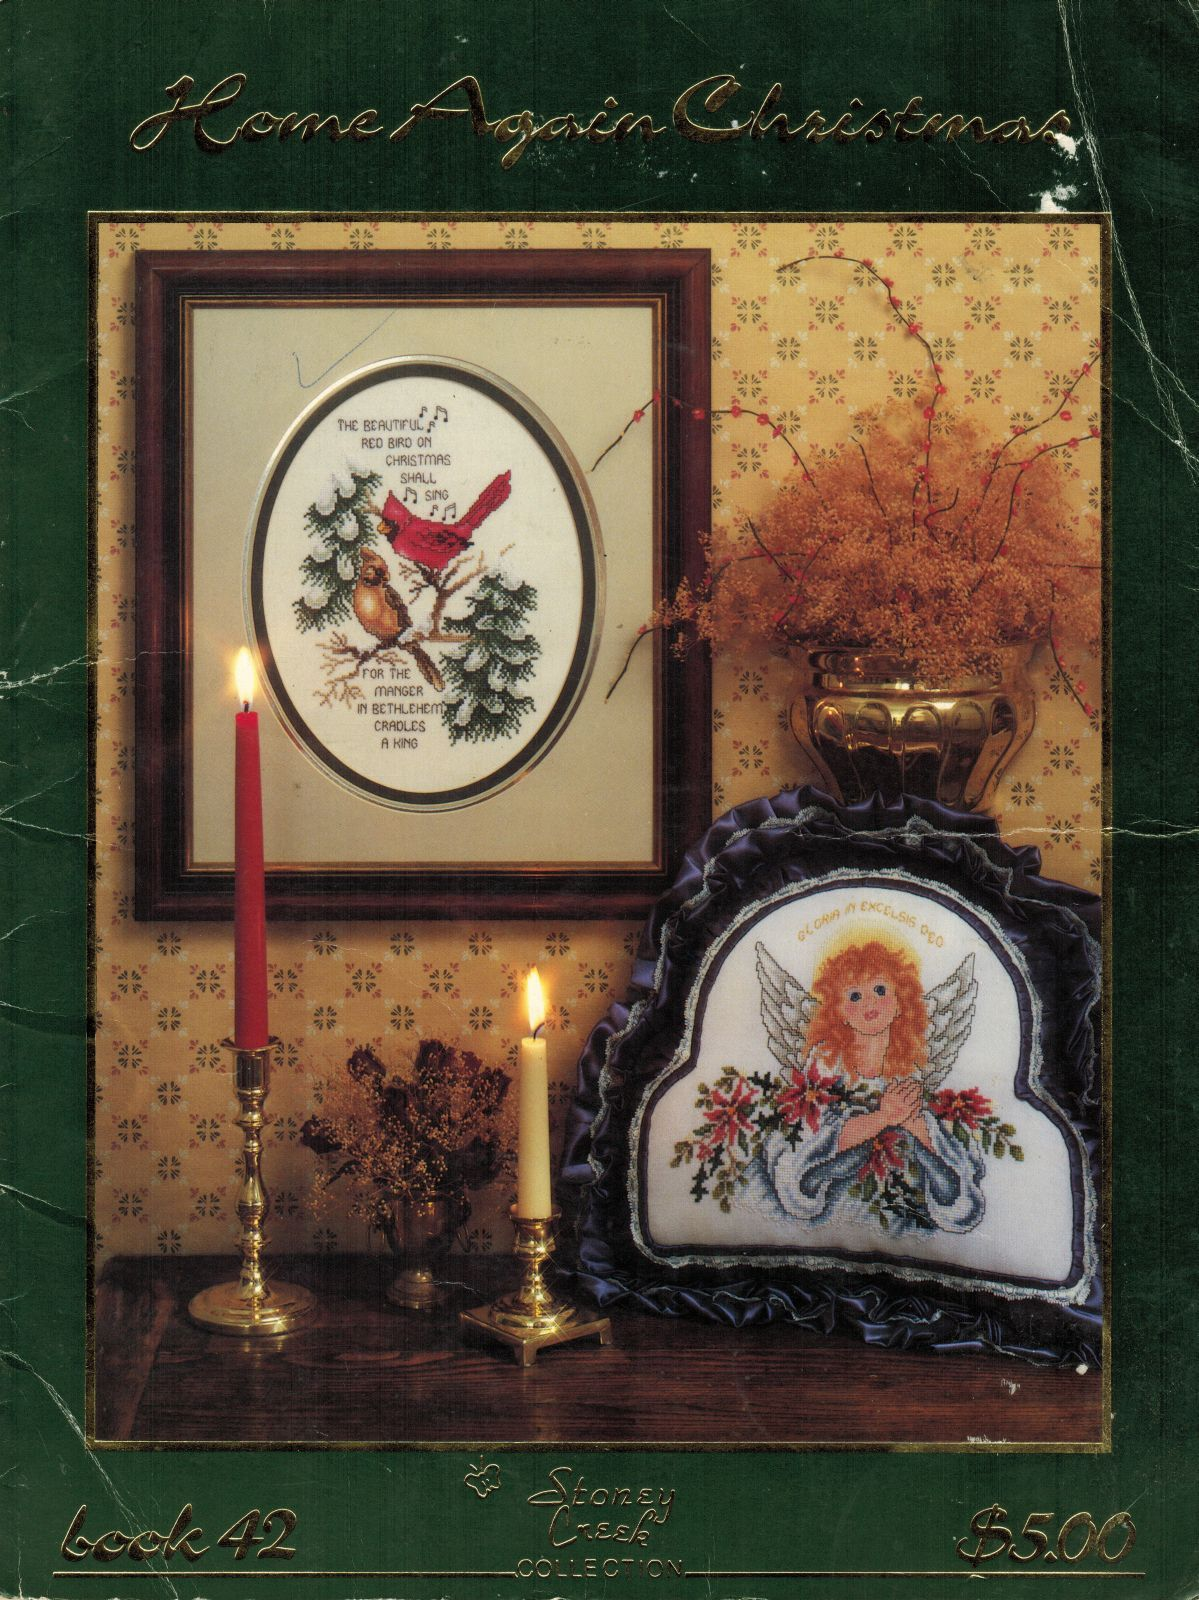 Primary image for Cross Stitch Home Again Christmas Inspirational Angels Gloria Cardinal Patterns